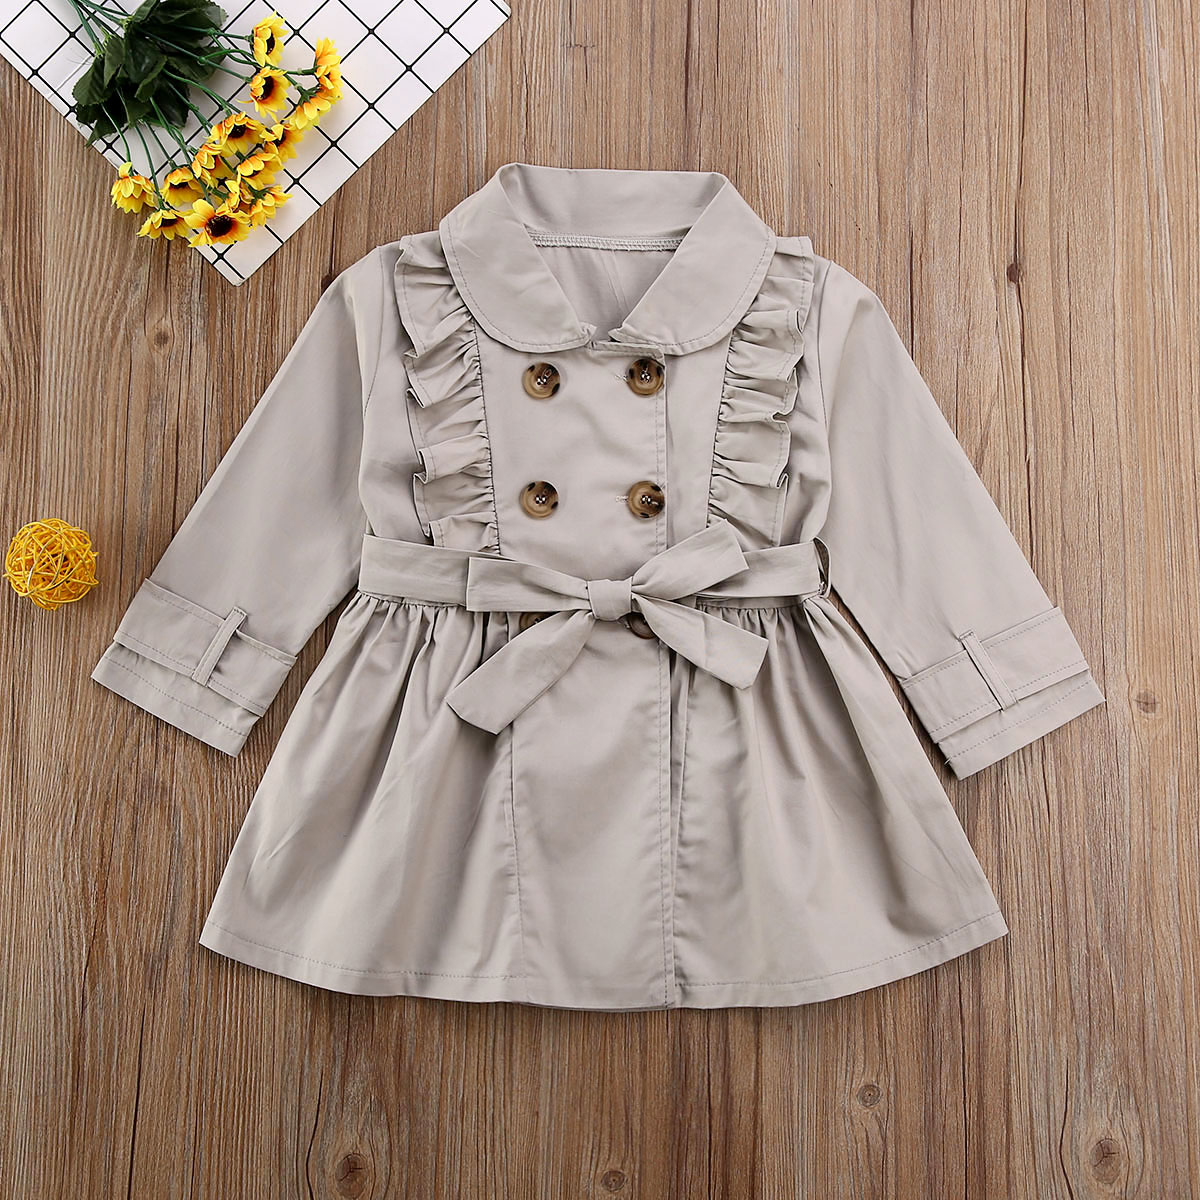 Pudcoco Toddler Baby Girl Clothes Solid Color Long Sleeve Ruffle Bandage Ruffle Casual Jacket  Windbreaker Coat Outwear Clothes